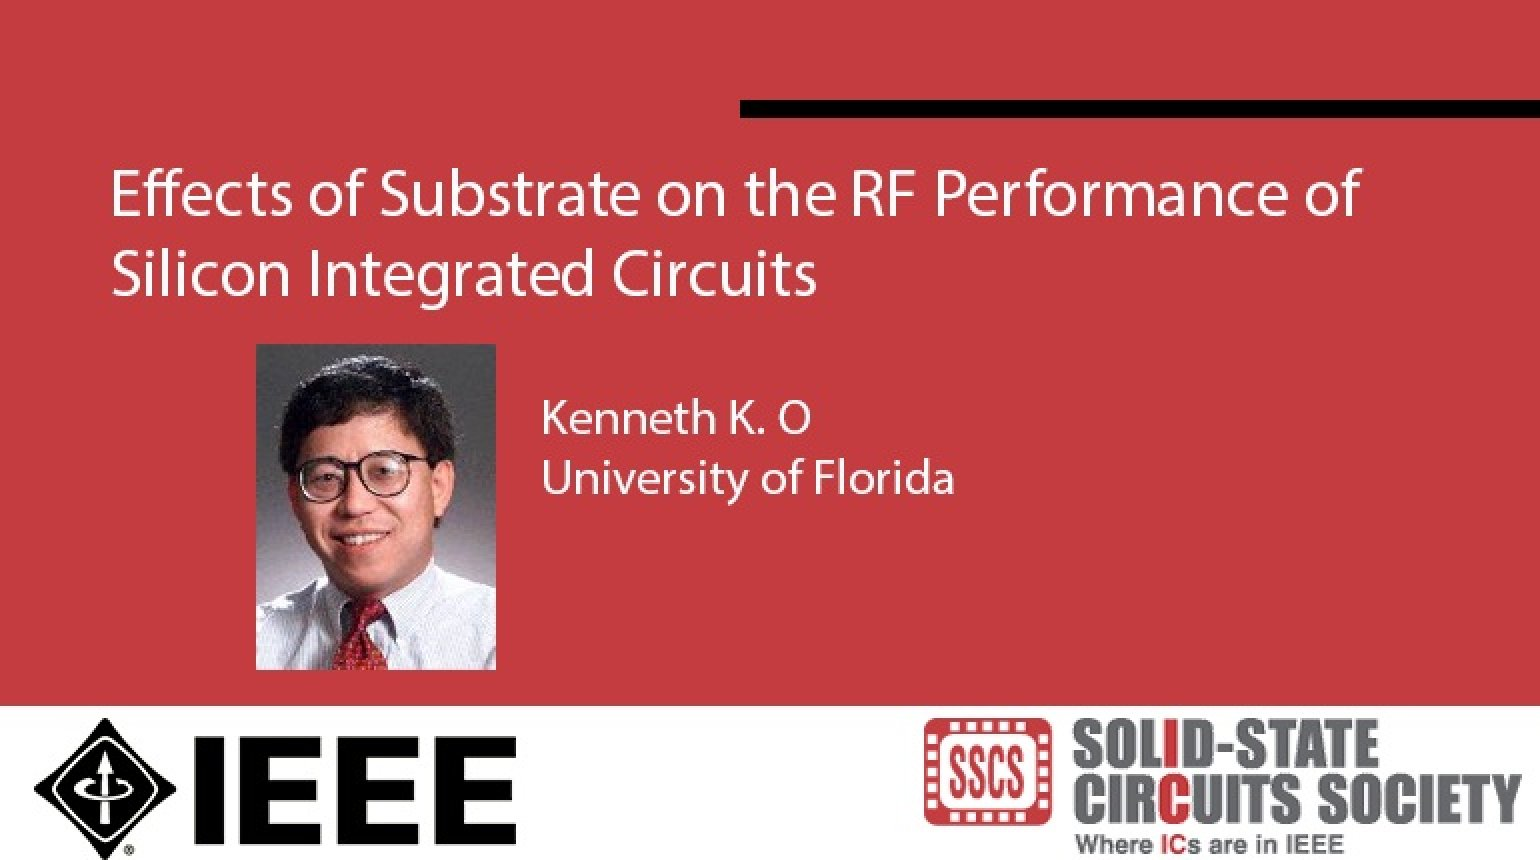 Effects of Substrate on the RF Performance of Silicon Integrated Circuits Video